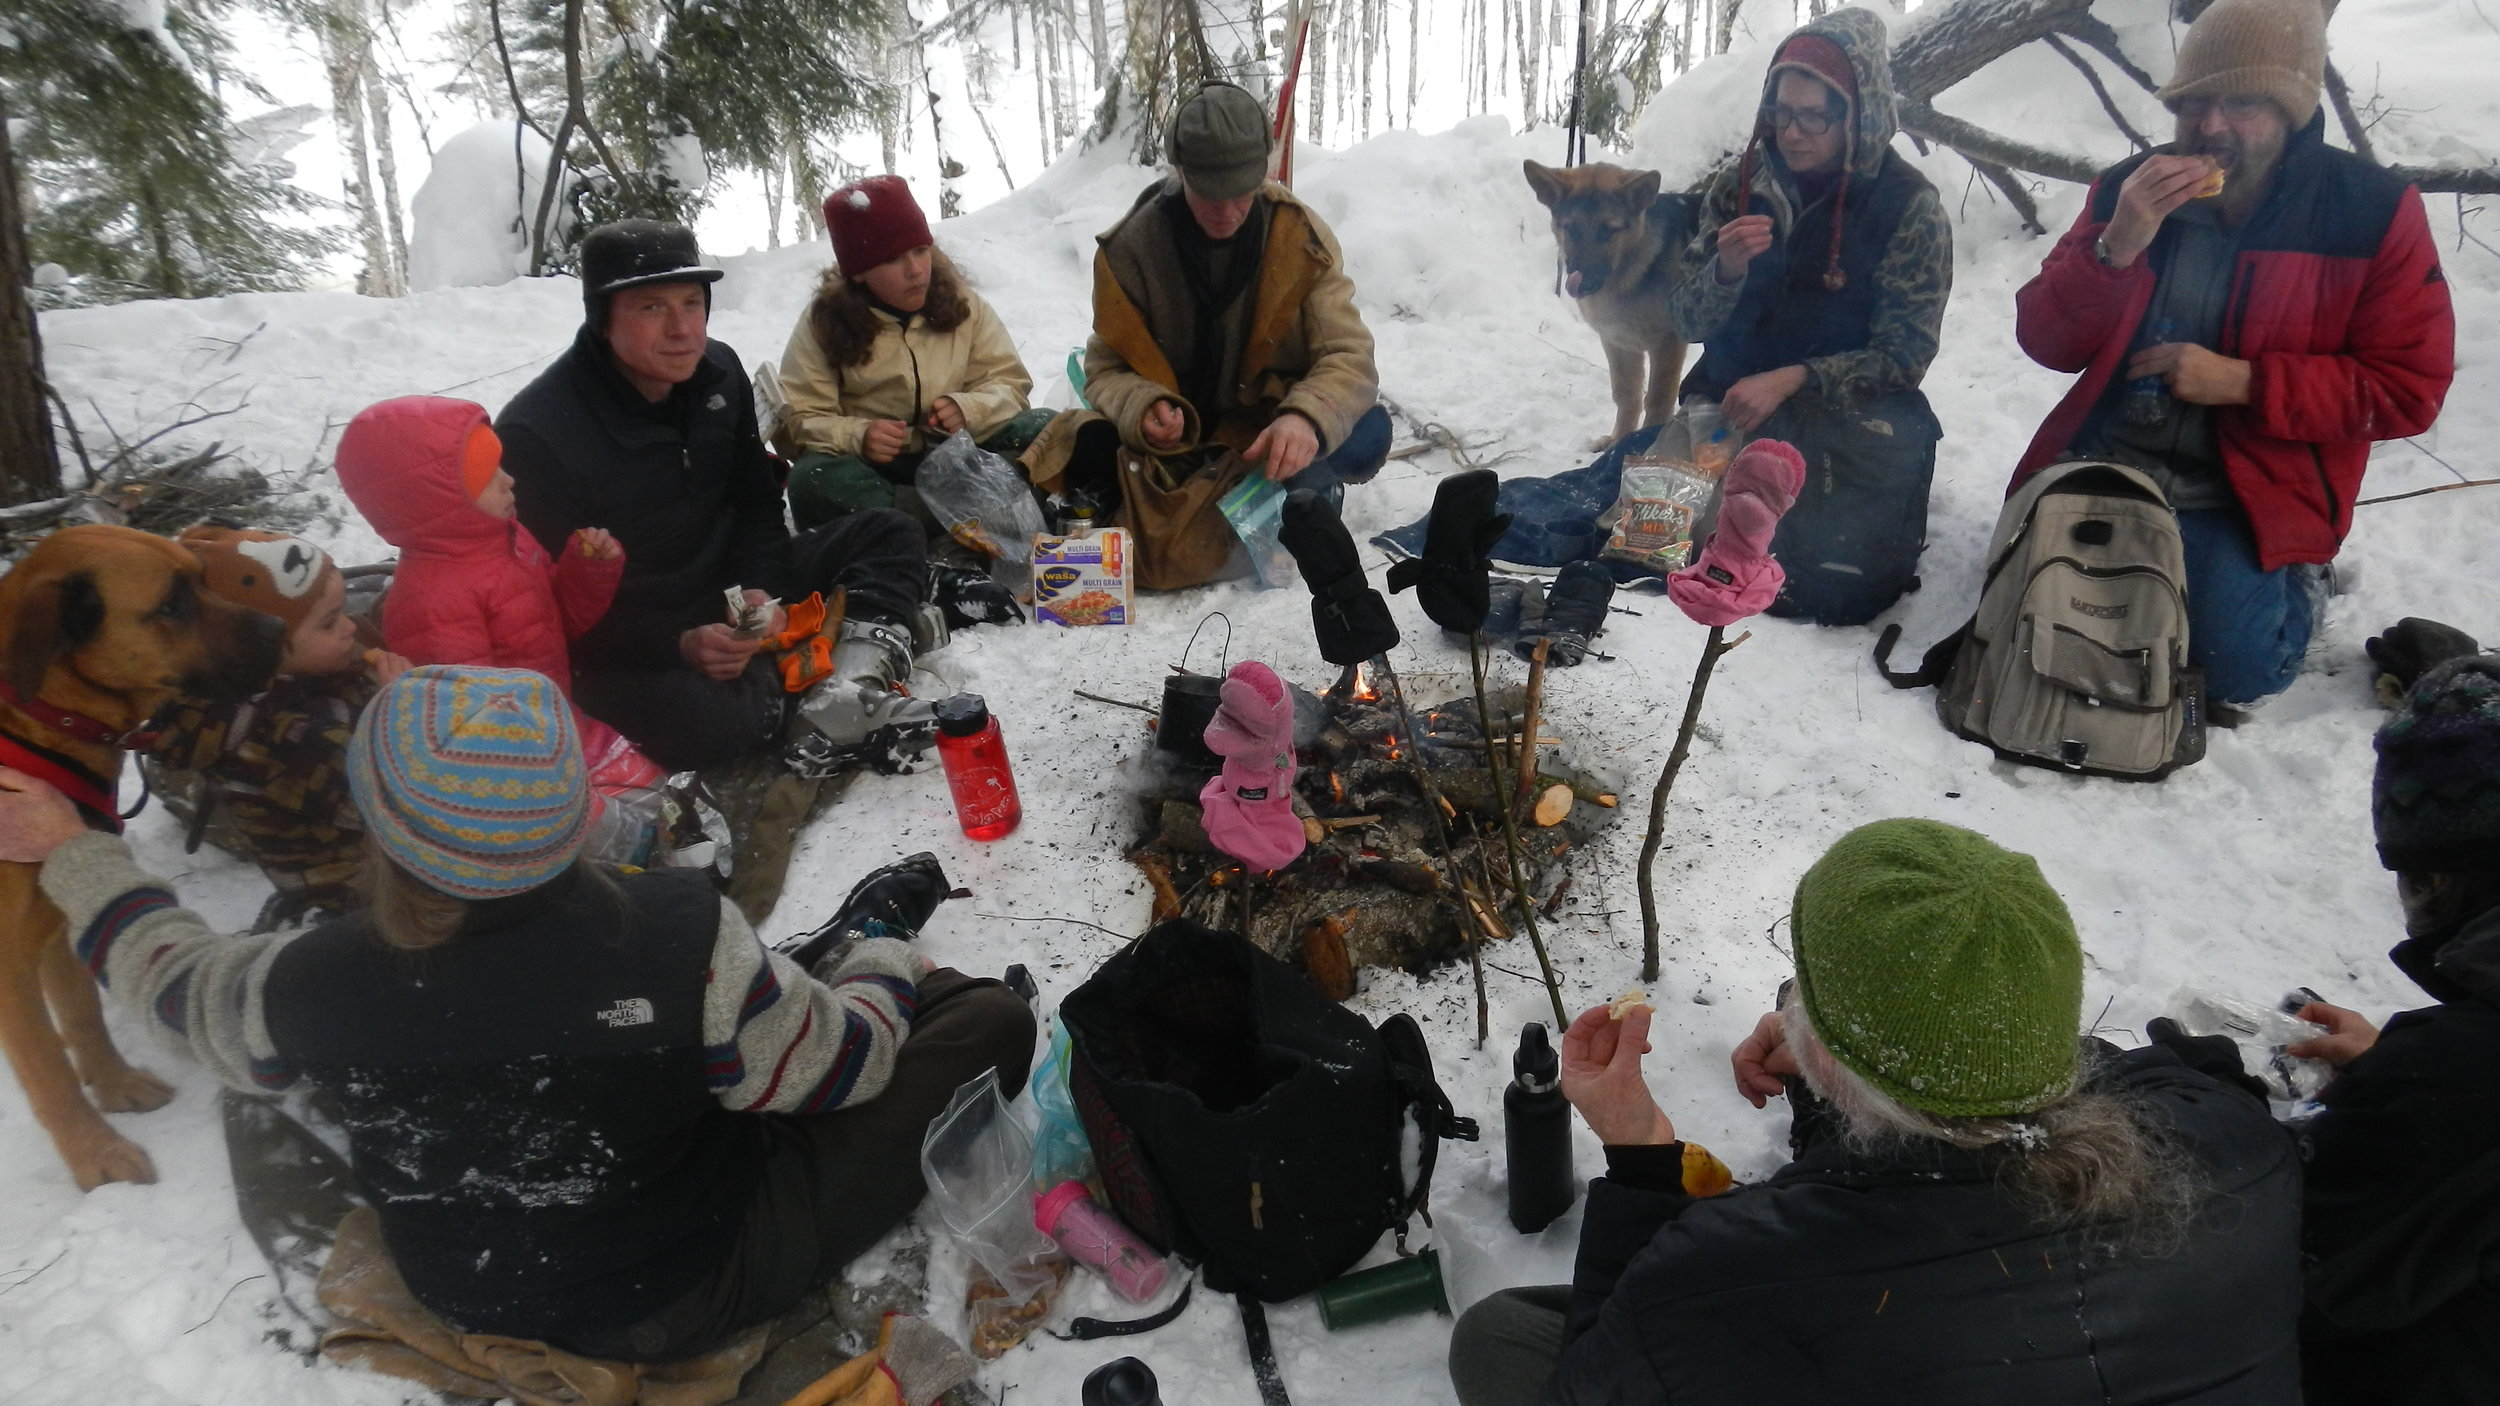 Lunch around the fire. Photo taken by Jay Johnson